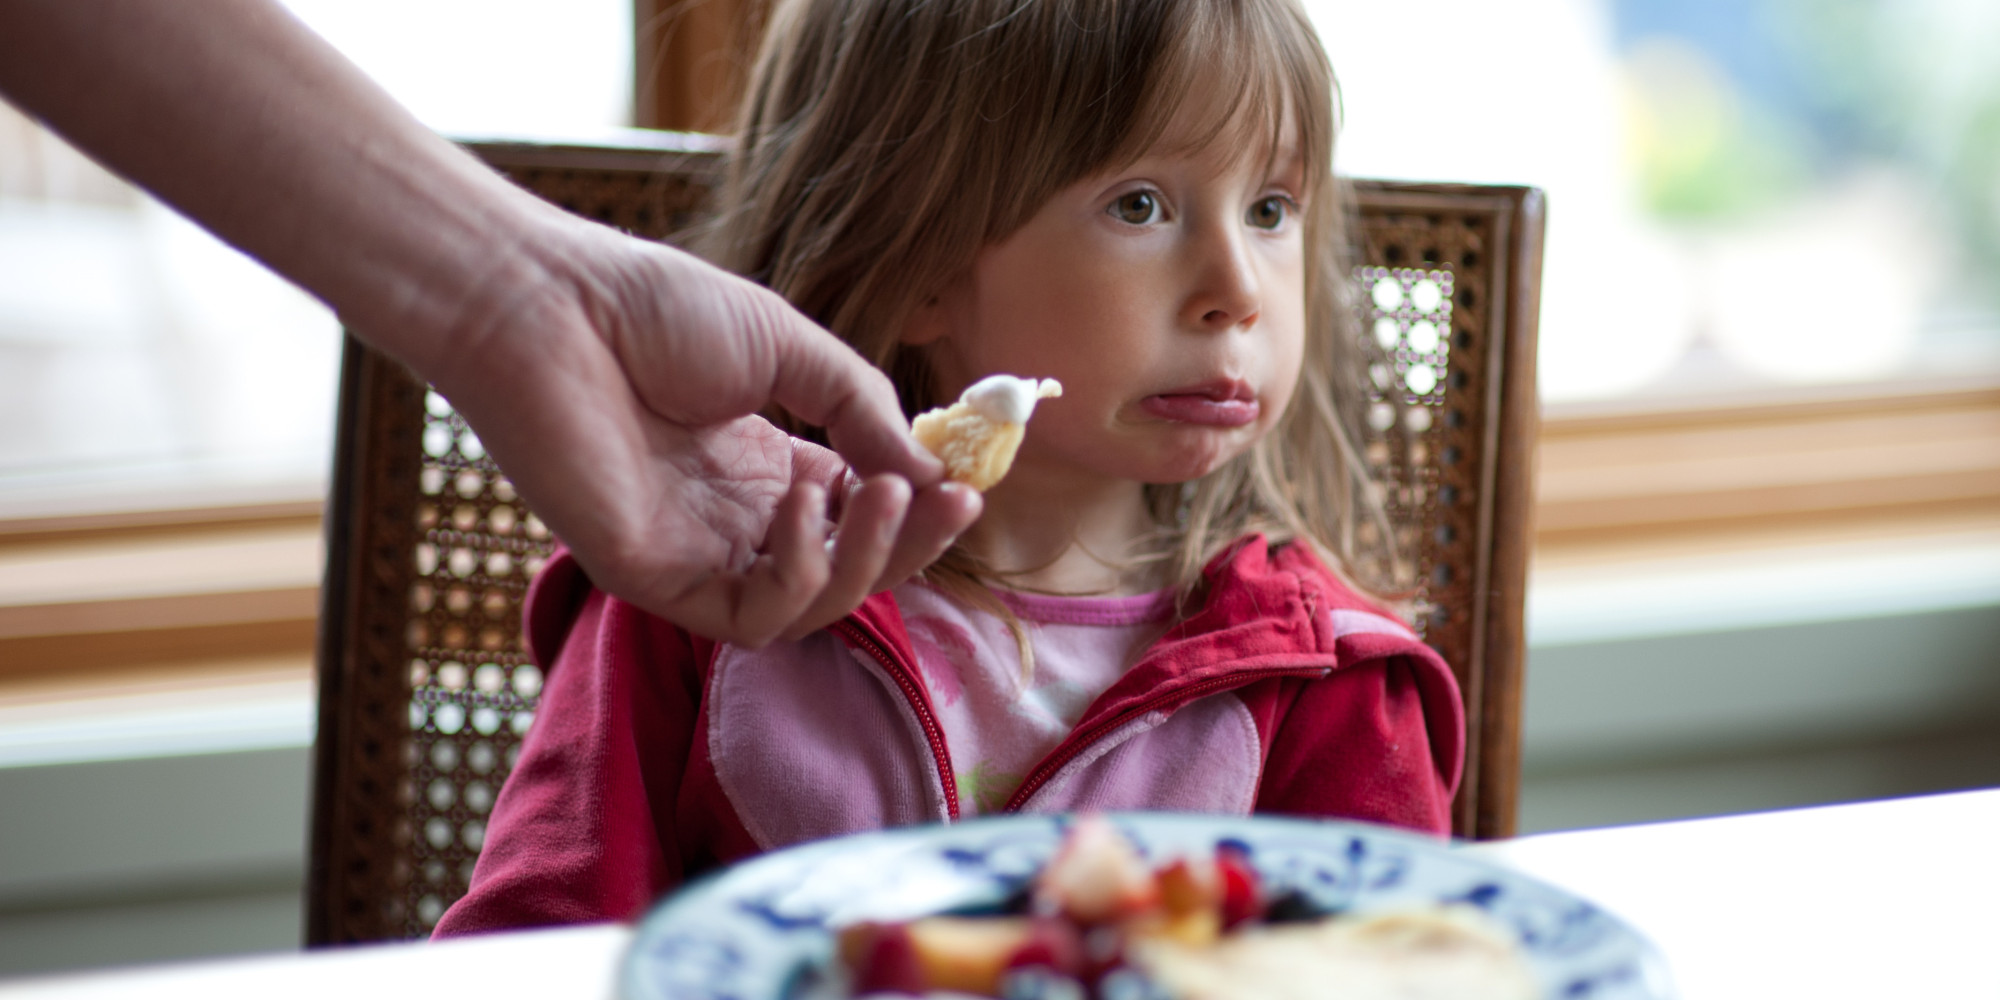 The Children S Eating Disorder More Common Than Anorexia